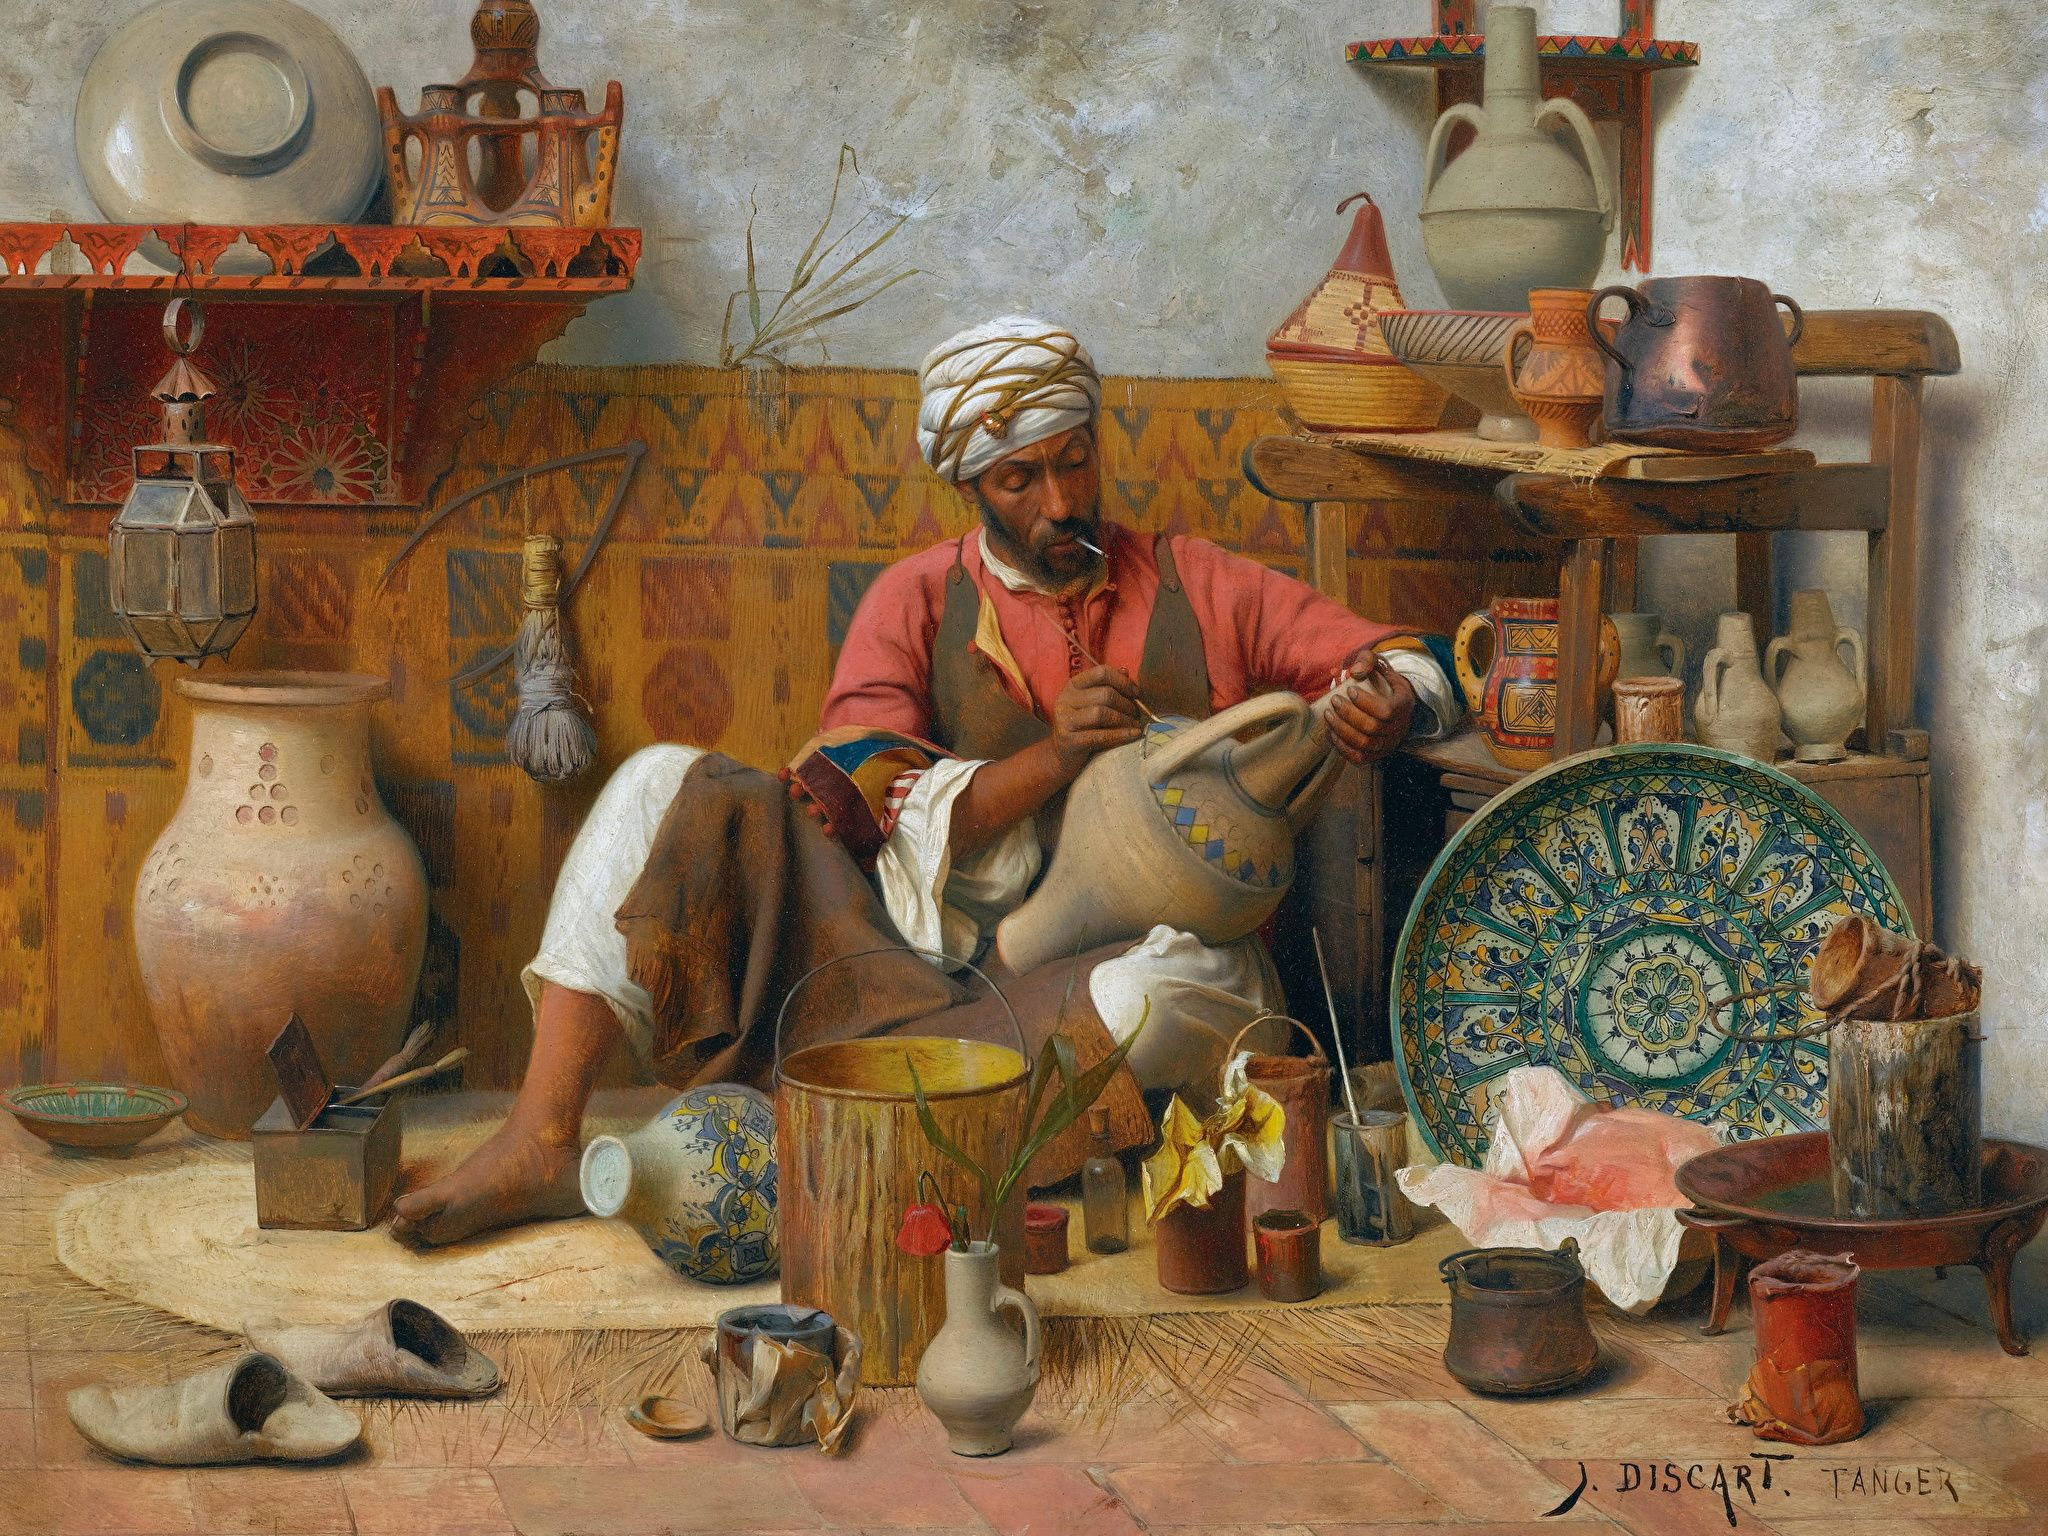 2048x1536 Photo Men Jean Discart, The Pottery Workshop, Tangiers 2048x1536